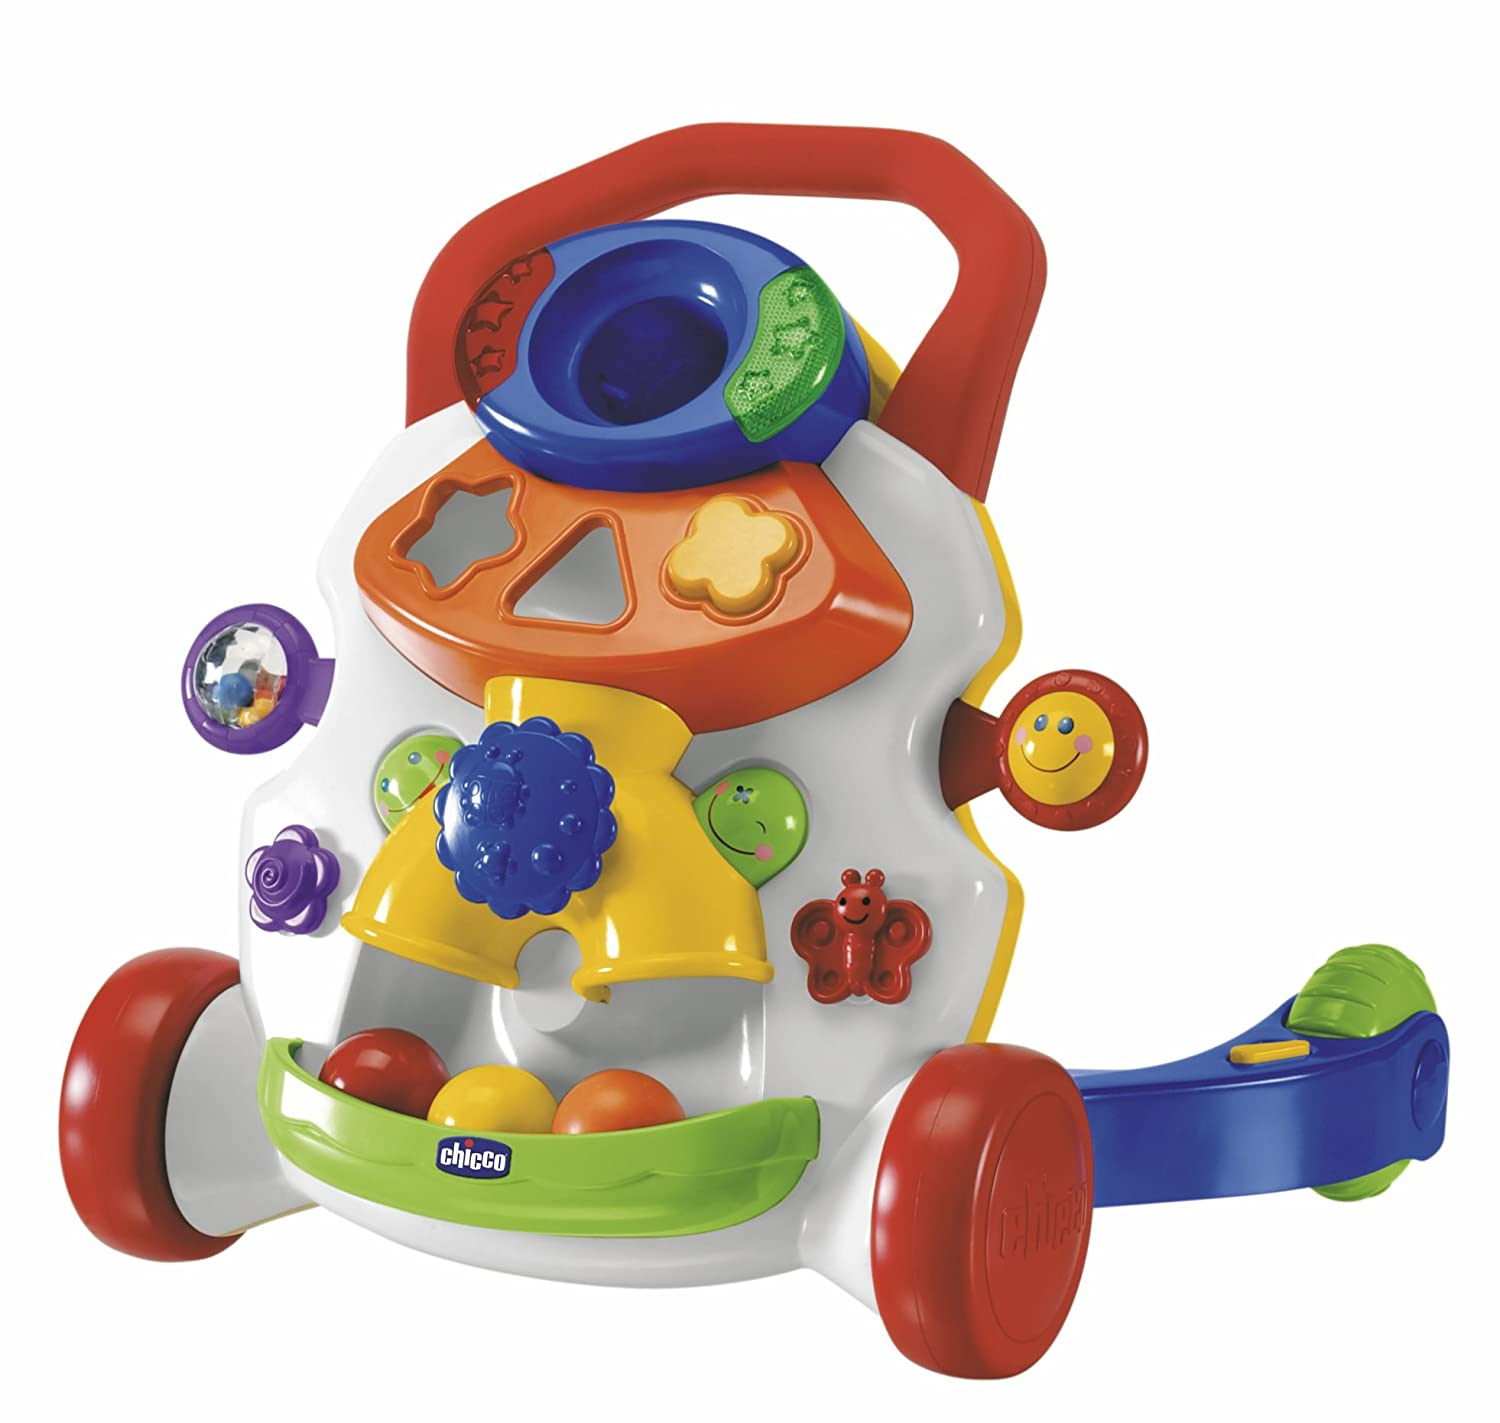 Chicco Baby Steps Activity Walker - Multi-Coloured 00065261200010